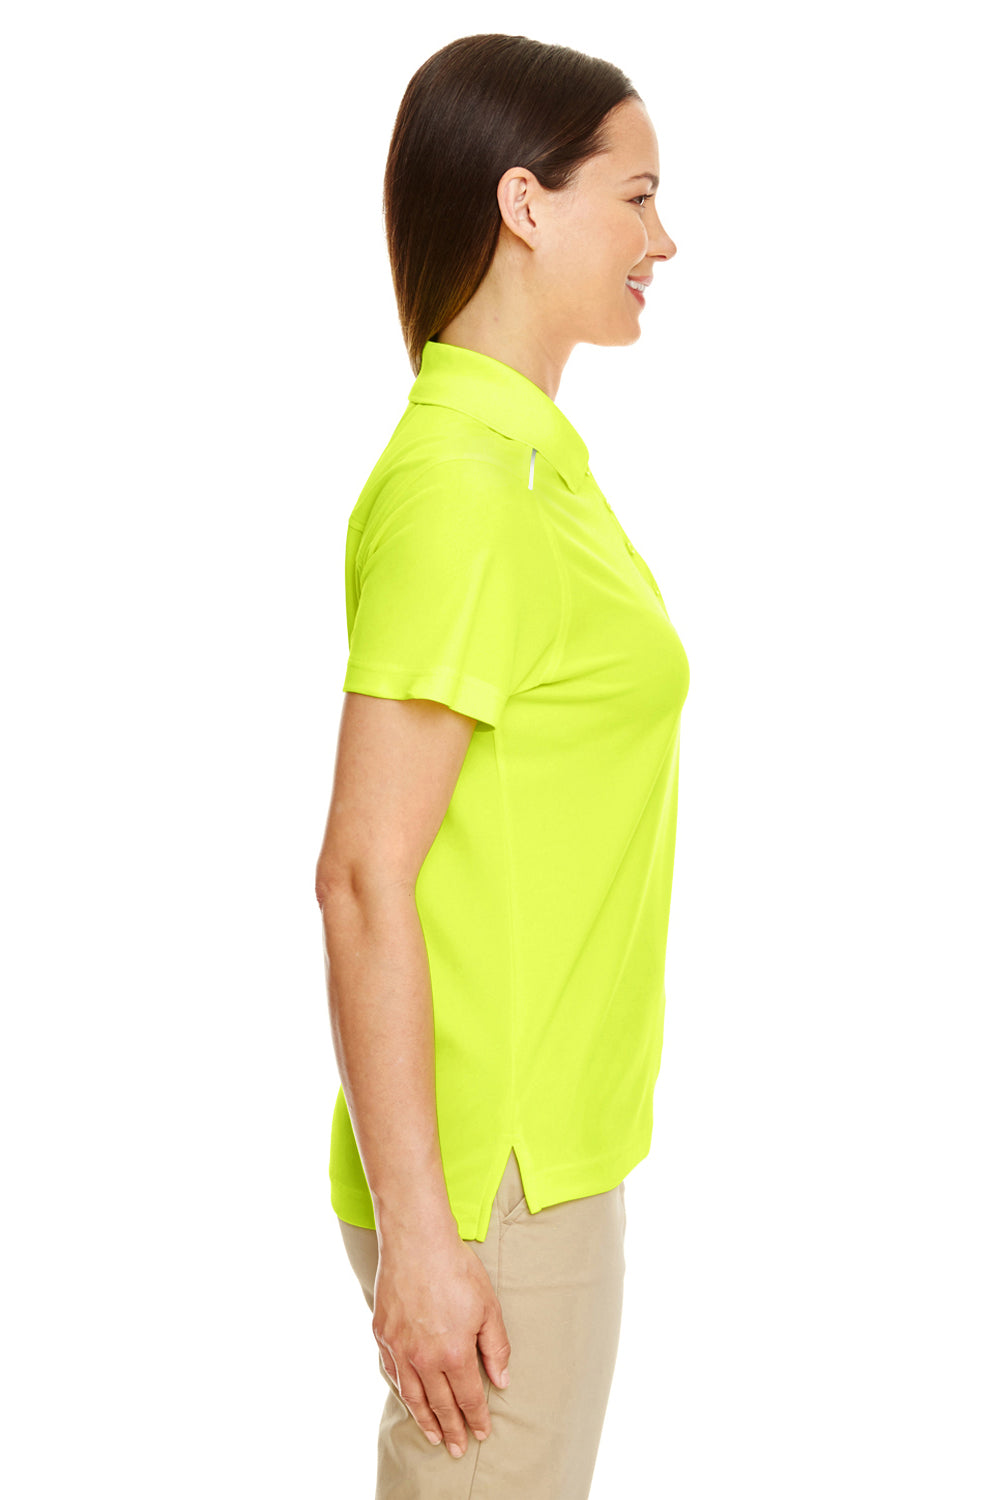 Core 365 78181R Womens Radiant Performance Moisture Wicking Short Sleeve Polo Shirt Safety Yellow Side